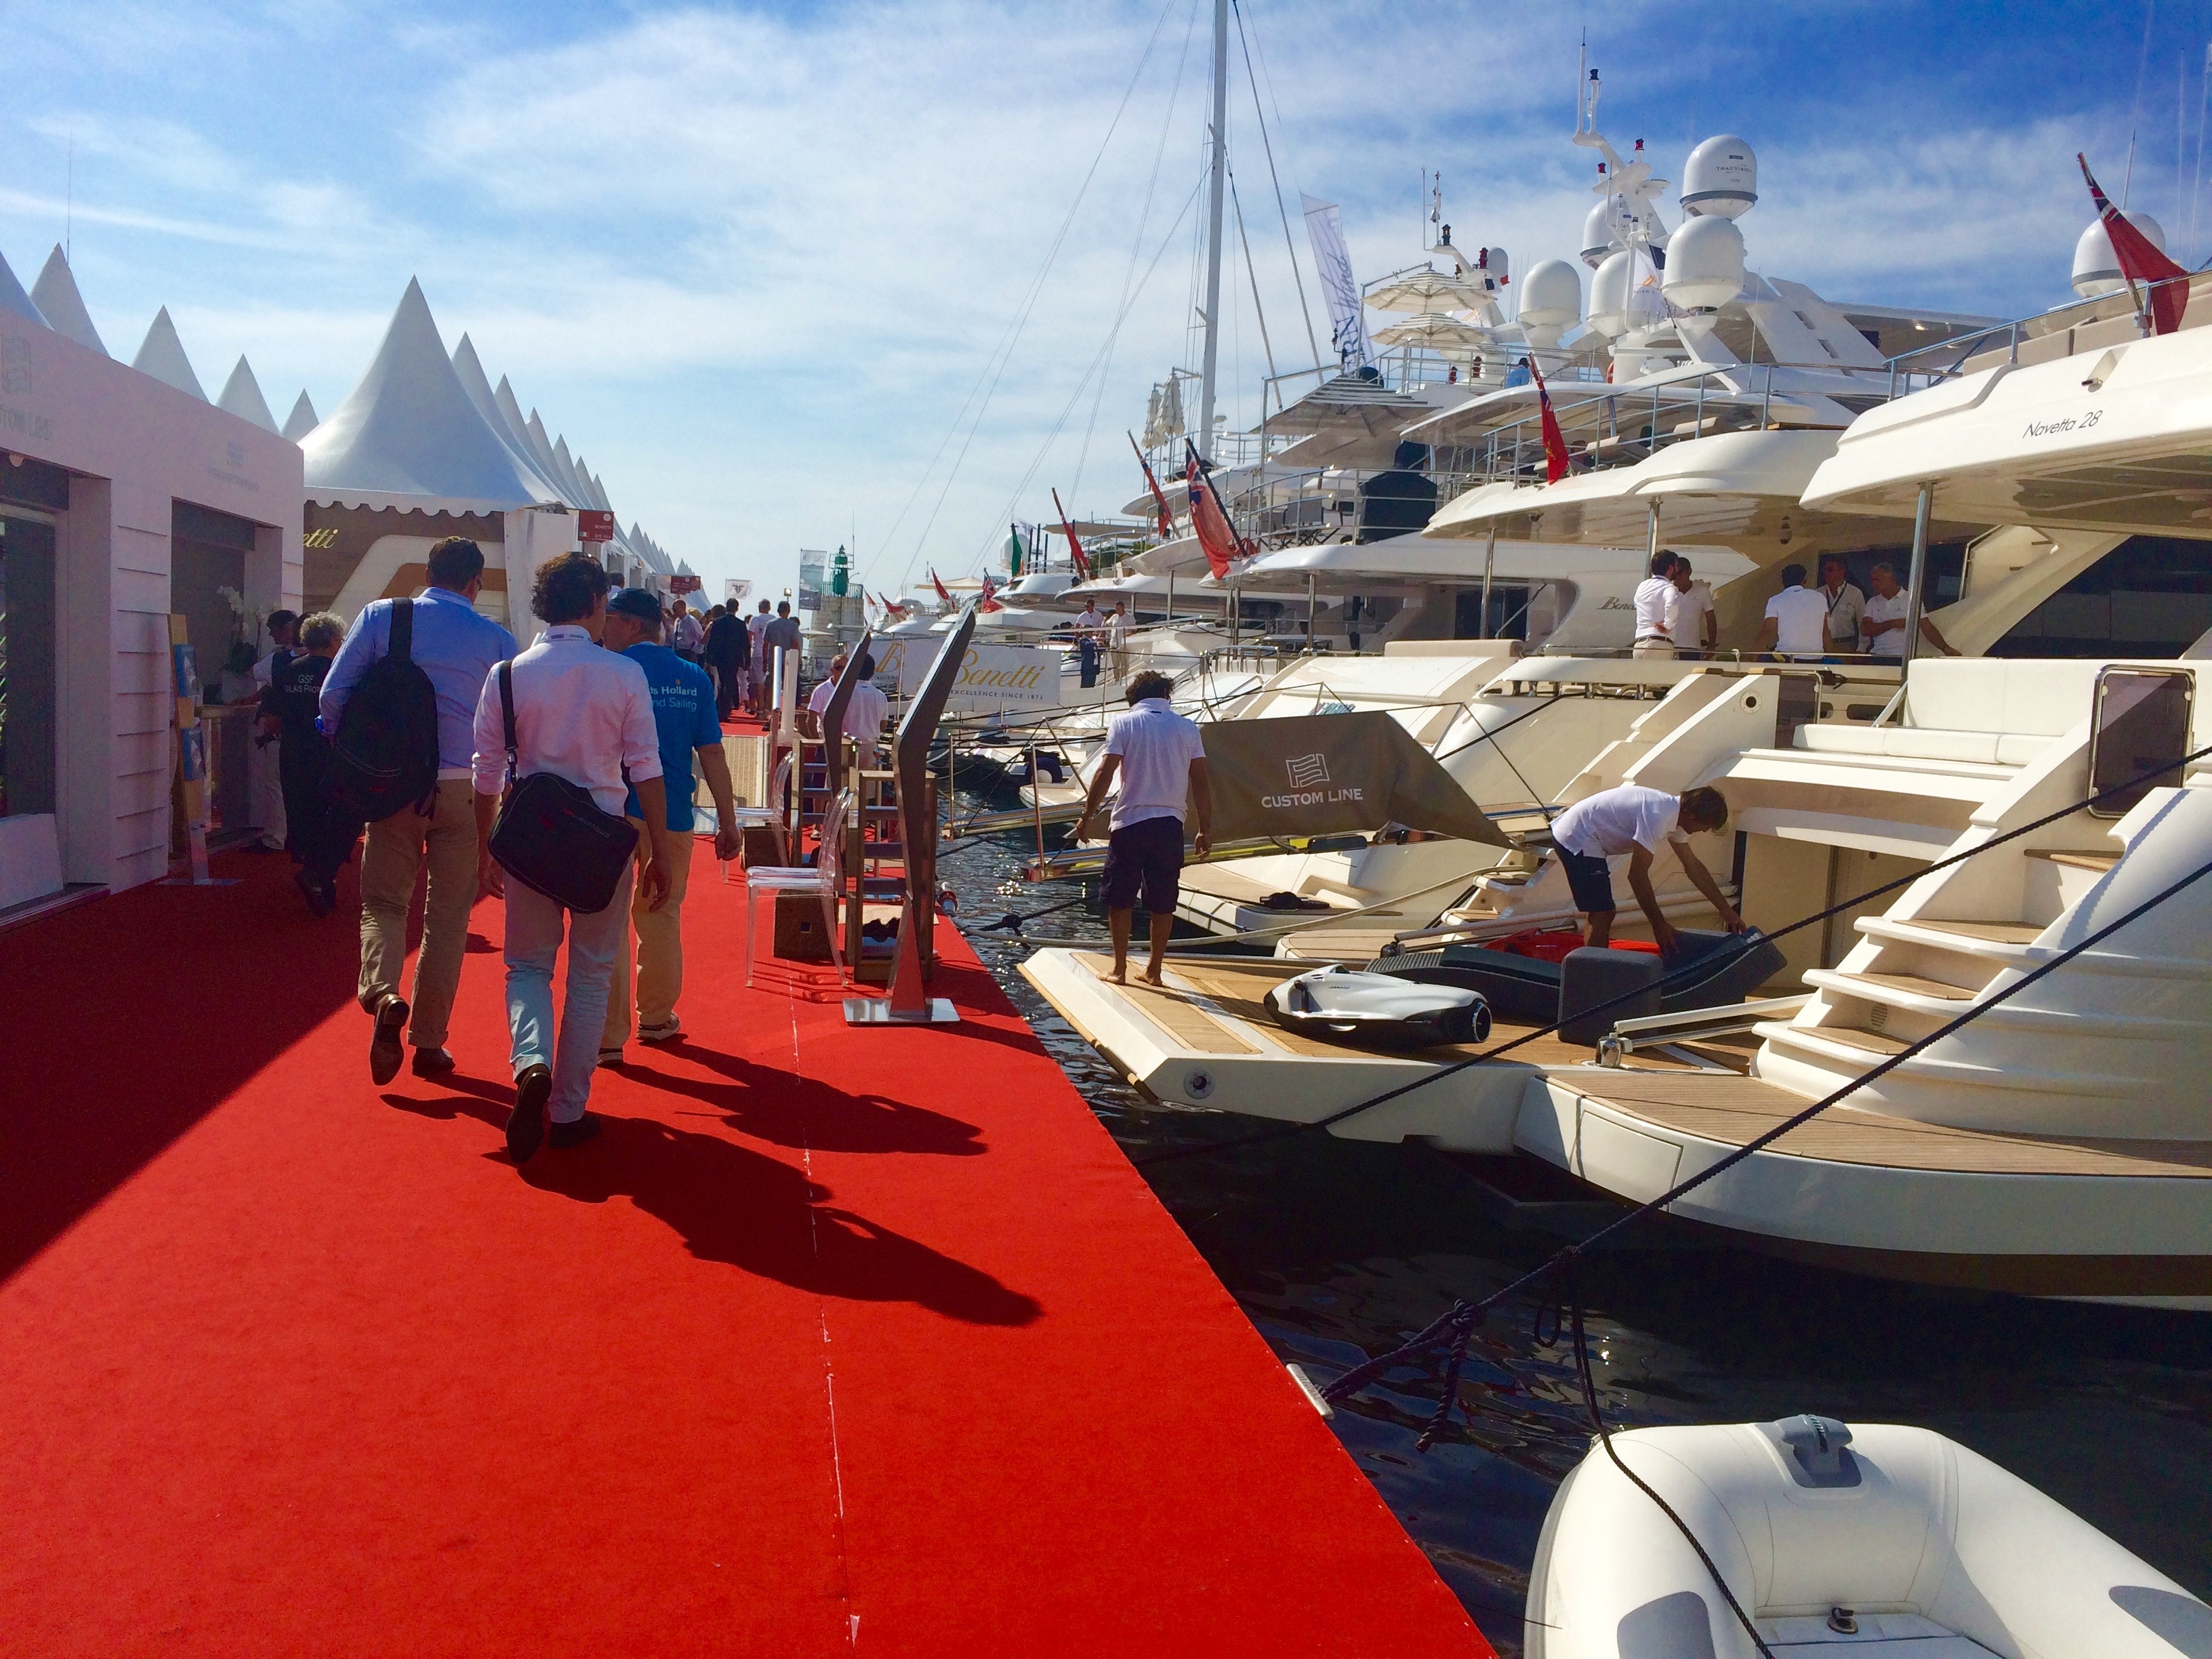 Charter a yacht to see the annual MIPIM conference